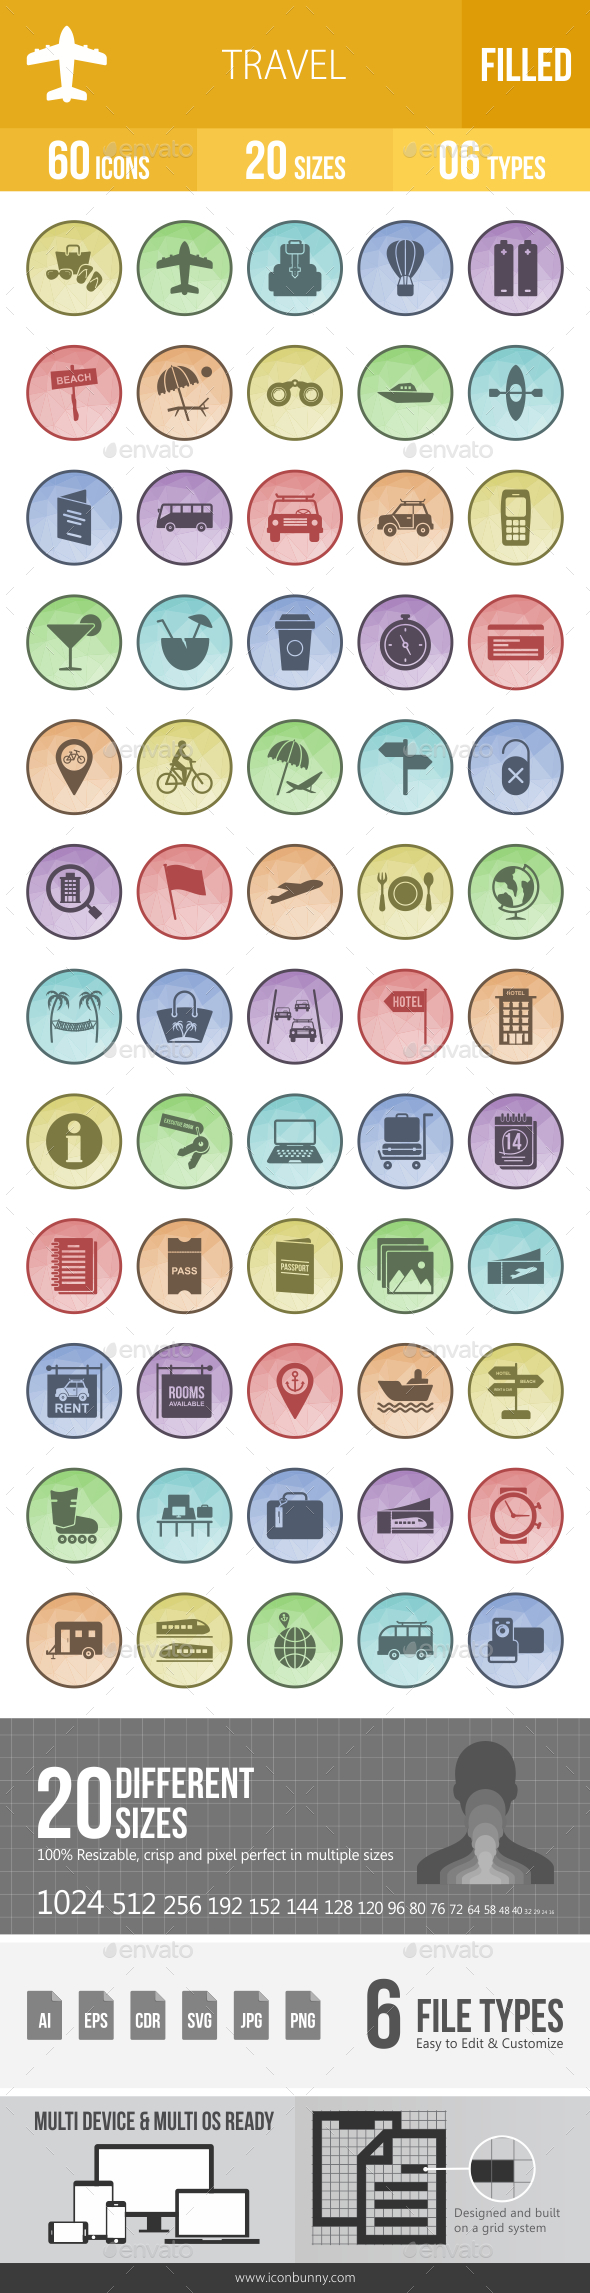 GraphicRiver 60 Travel Filled Low Poly Icons 21153119